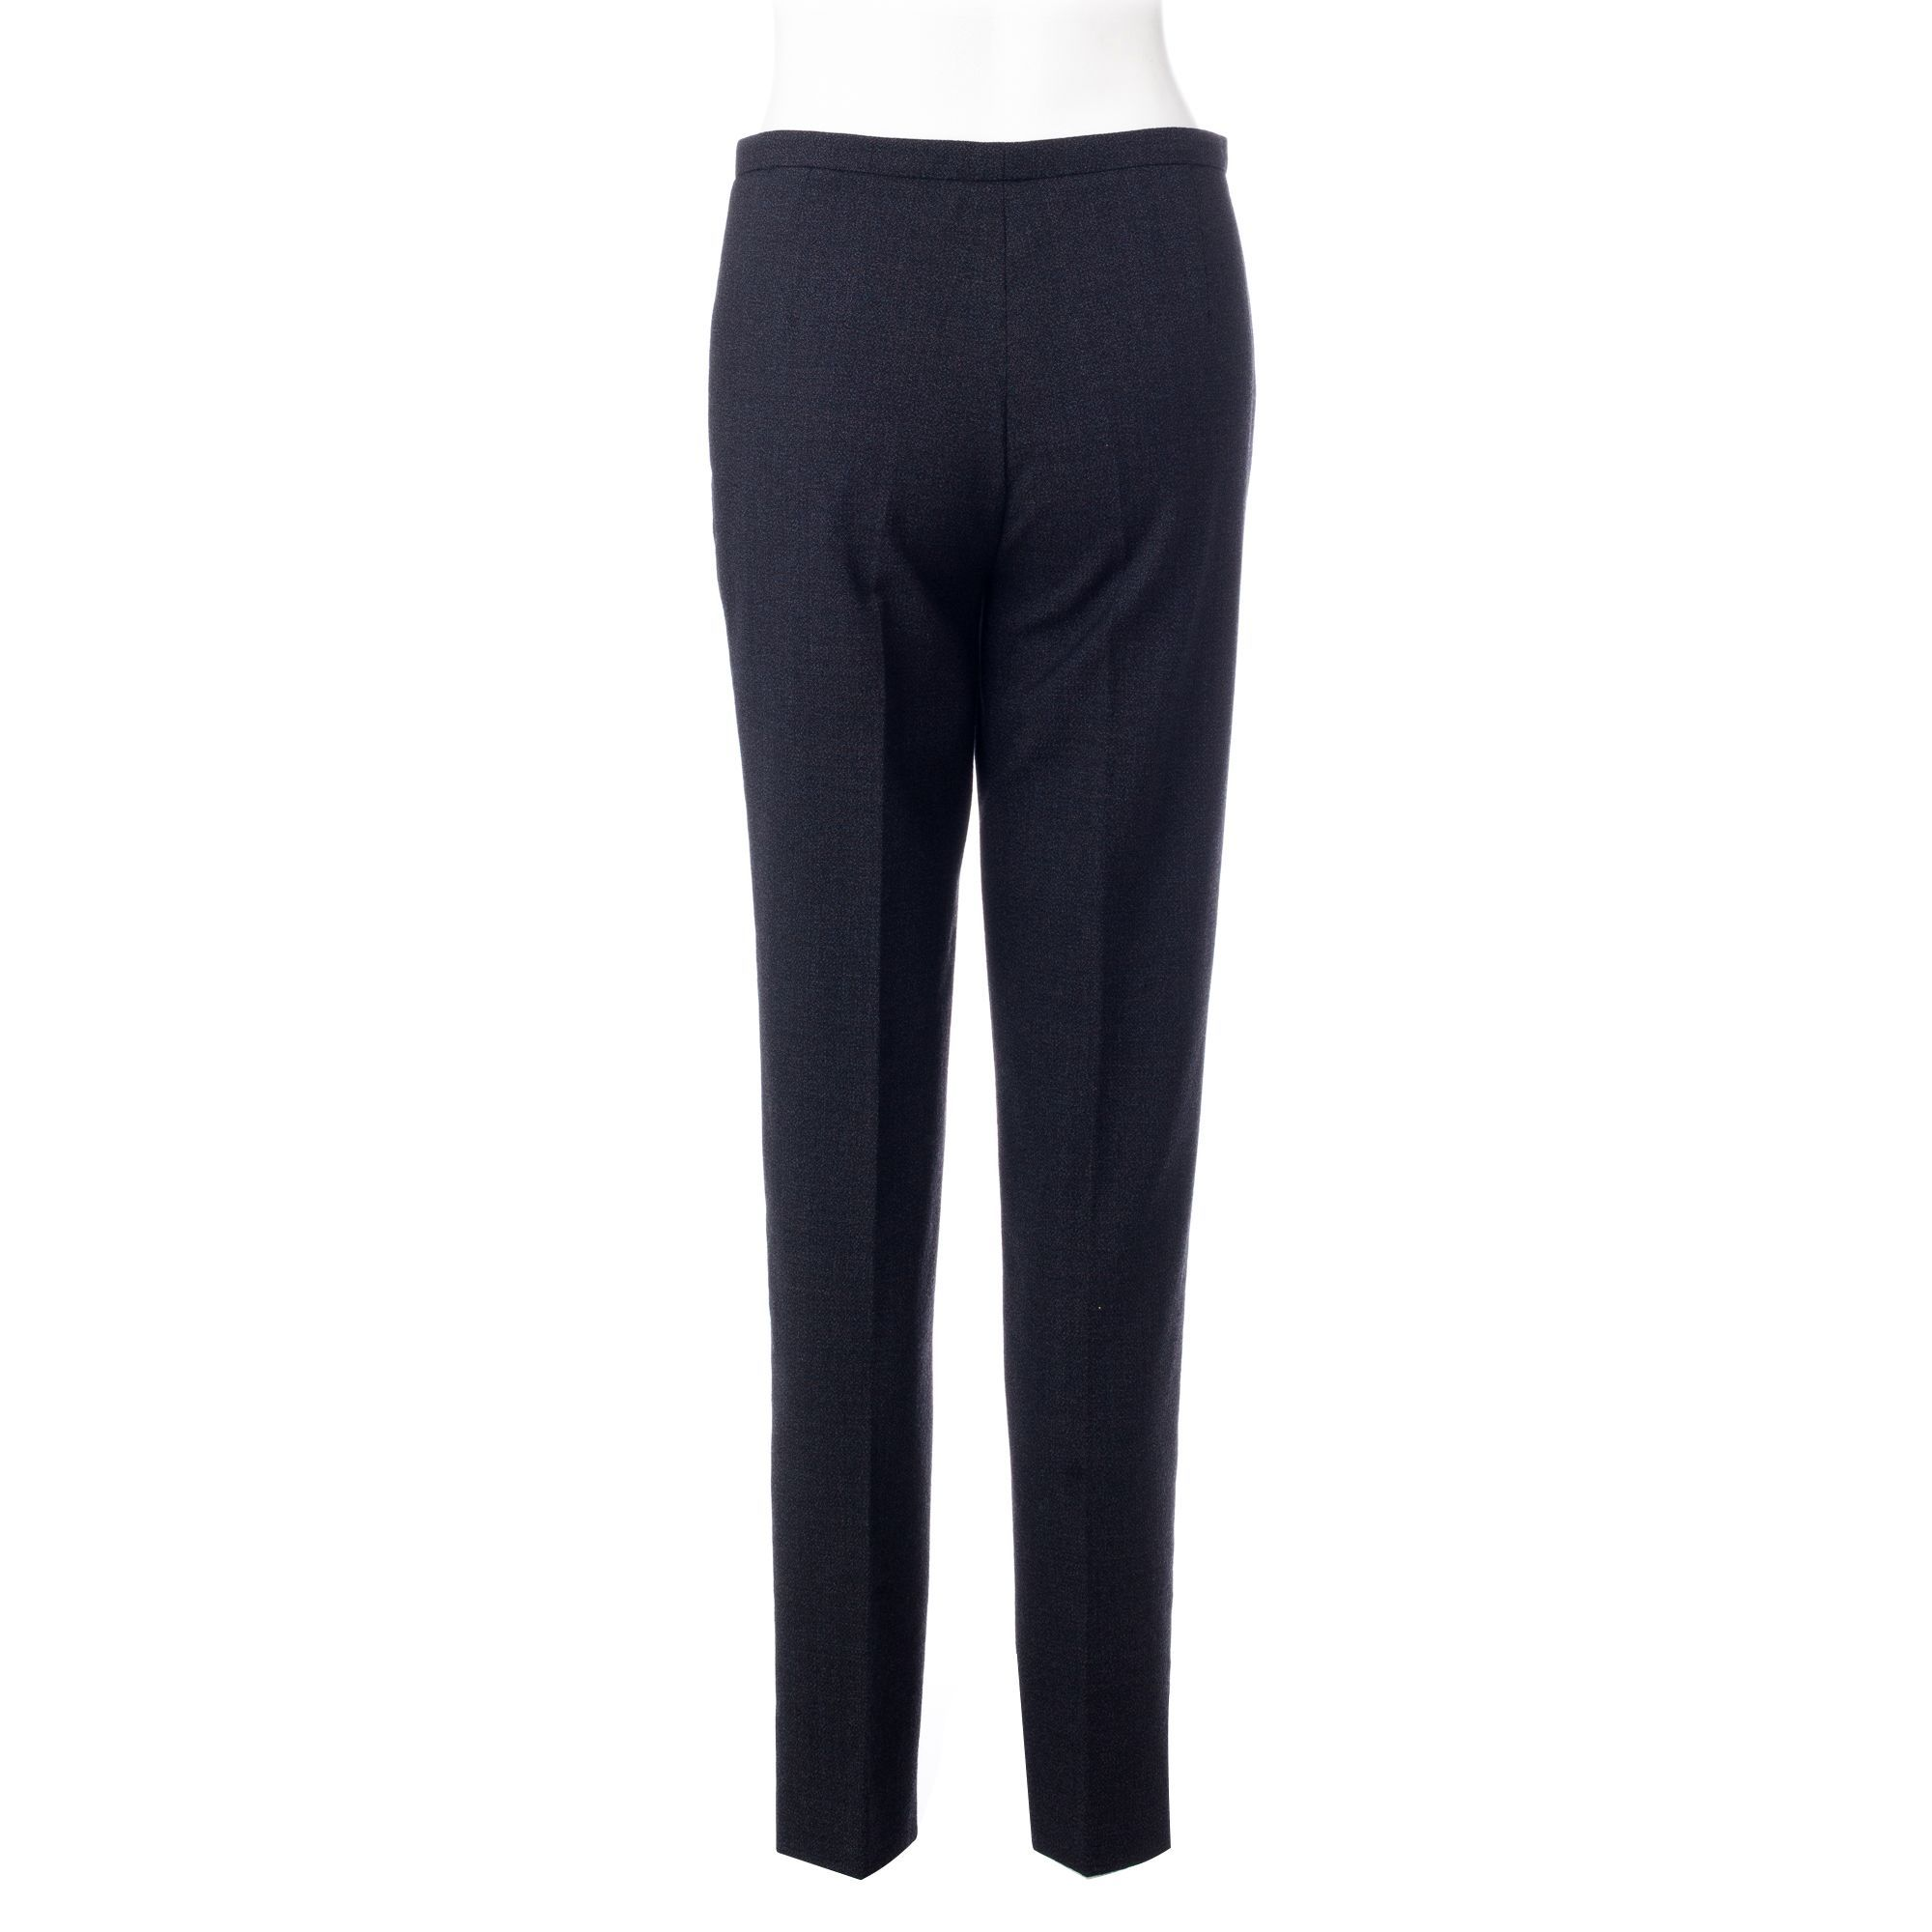 Hermès Straight Leg Trousers -Pre Owned Condition Excellent